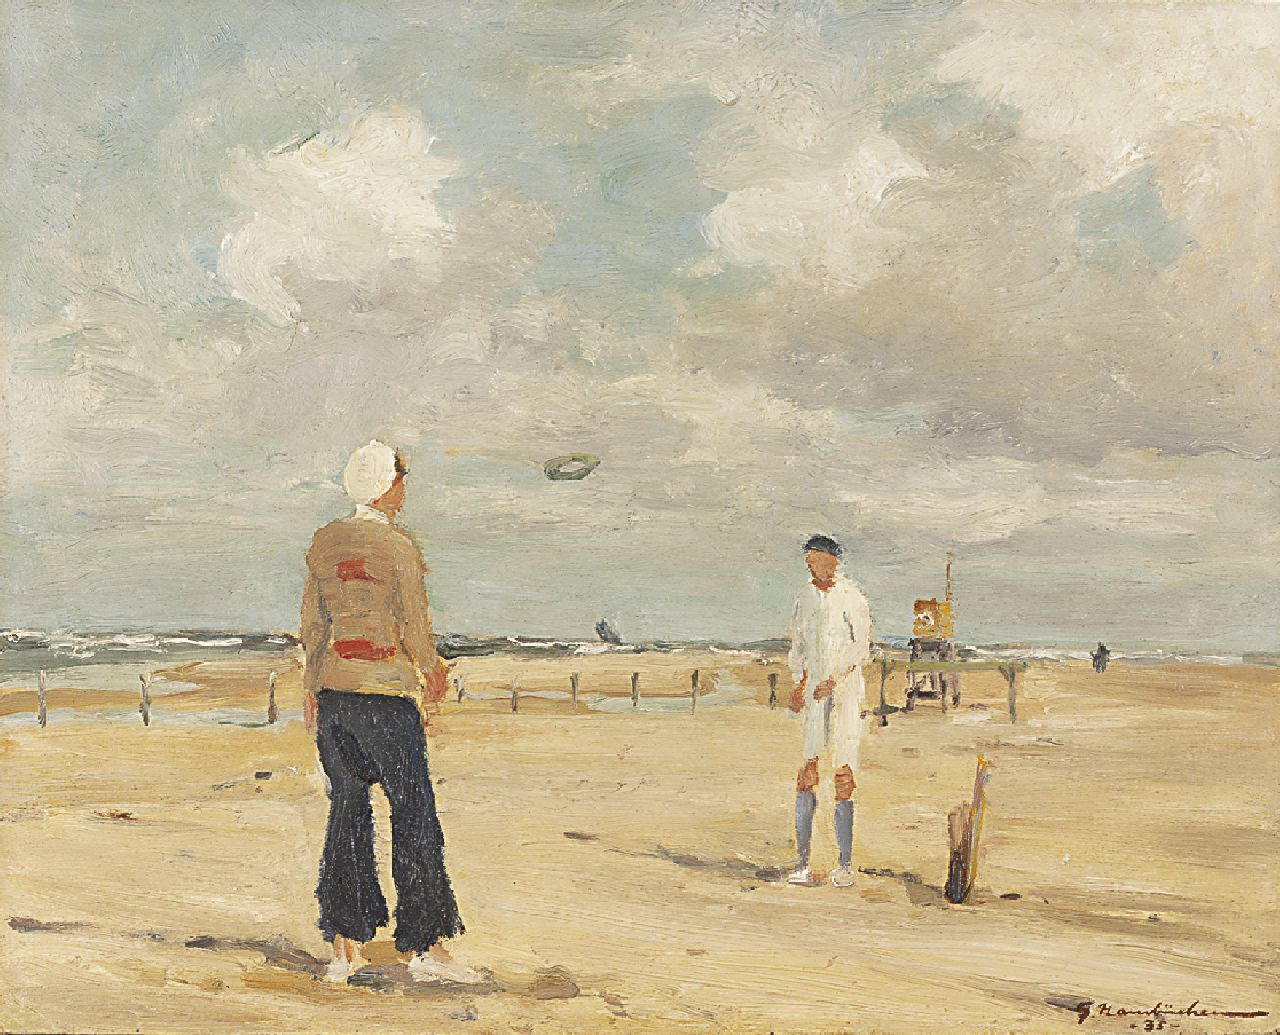 Hambüchen G.  | Georg Hambüchen | Paintings offered for sale | Ring throw on the beach, oil on board 37.7 x 46.3 cm, signed l.r. and dated '35